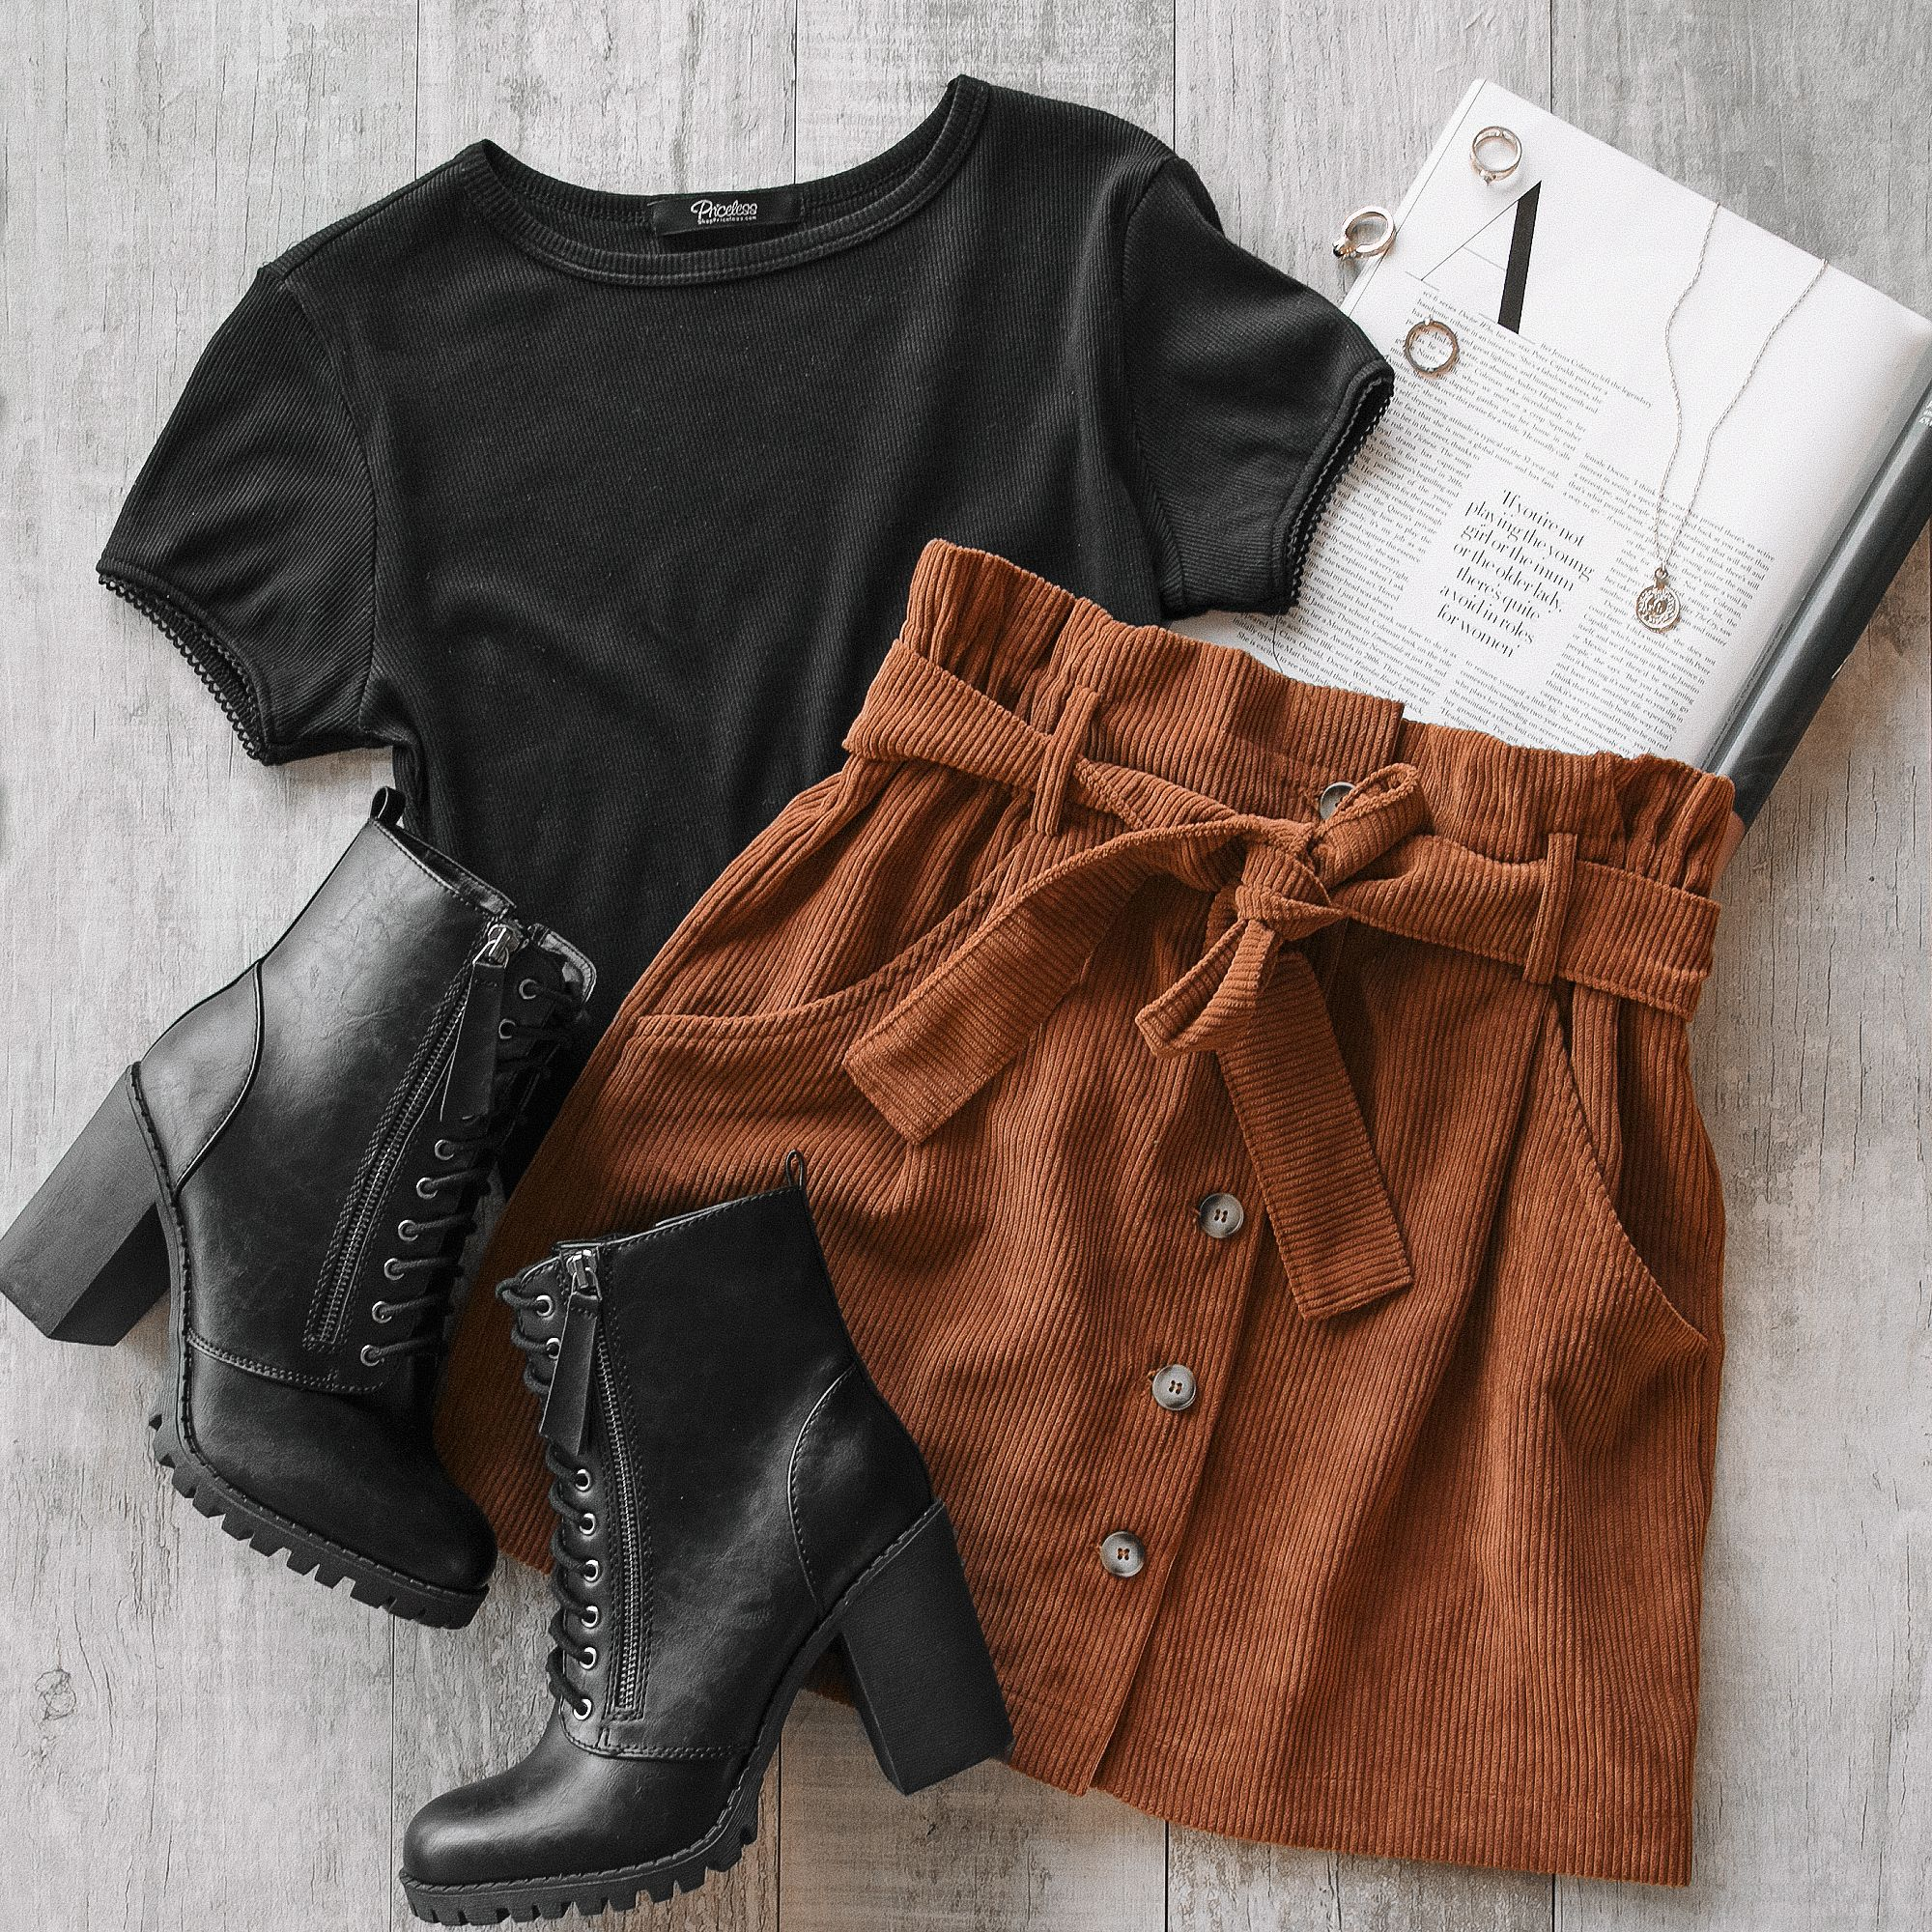 20 Chic Casual Outfits for Fall You Can Follow